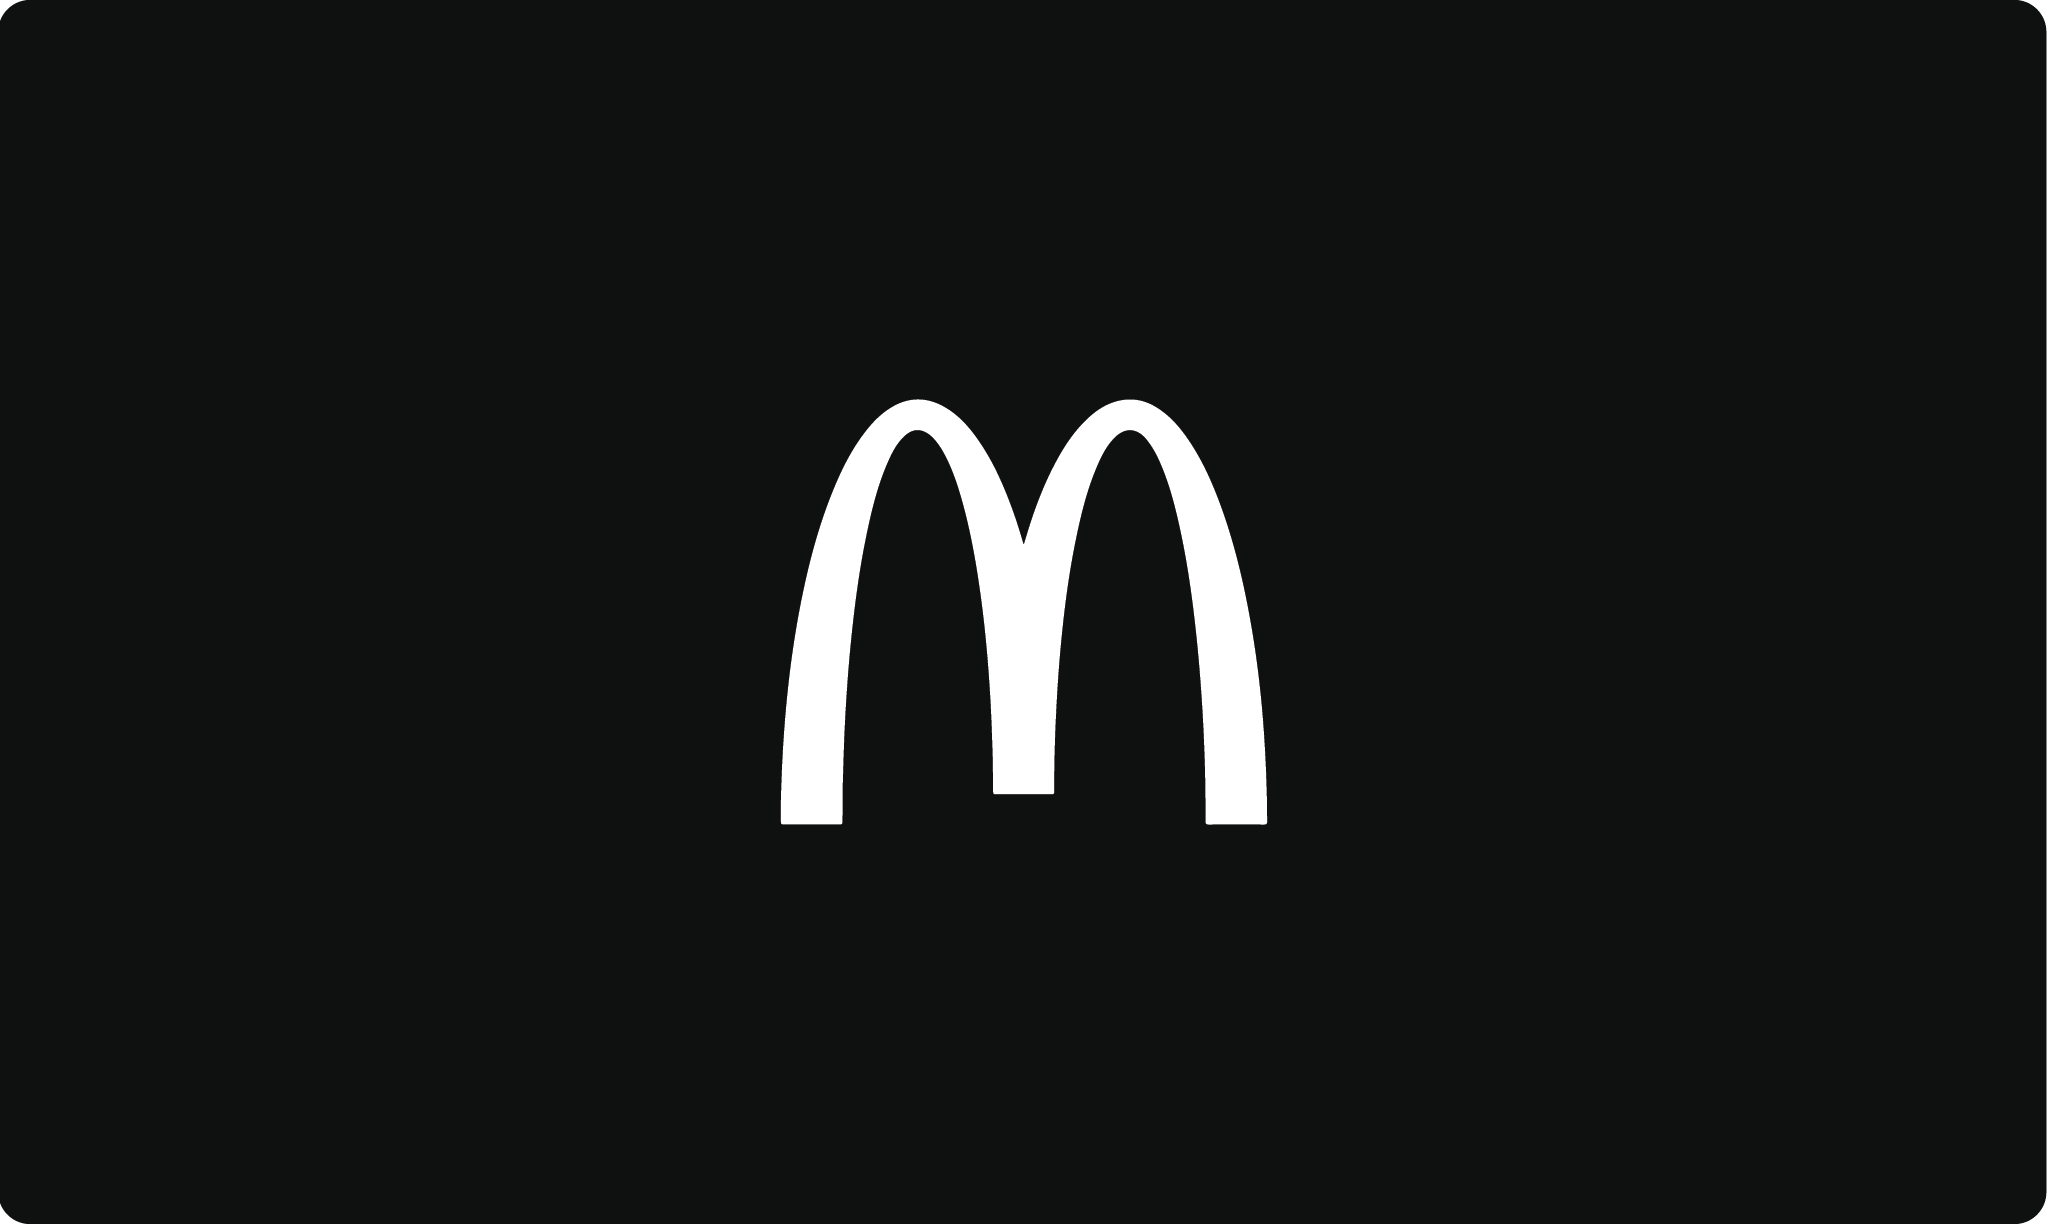 McDonalds logo in black and white